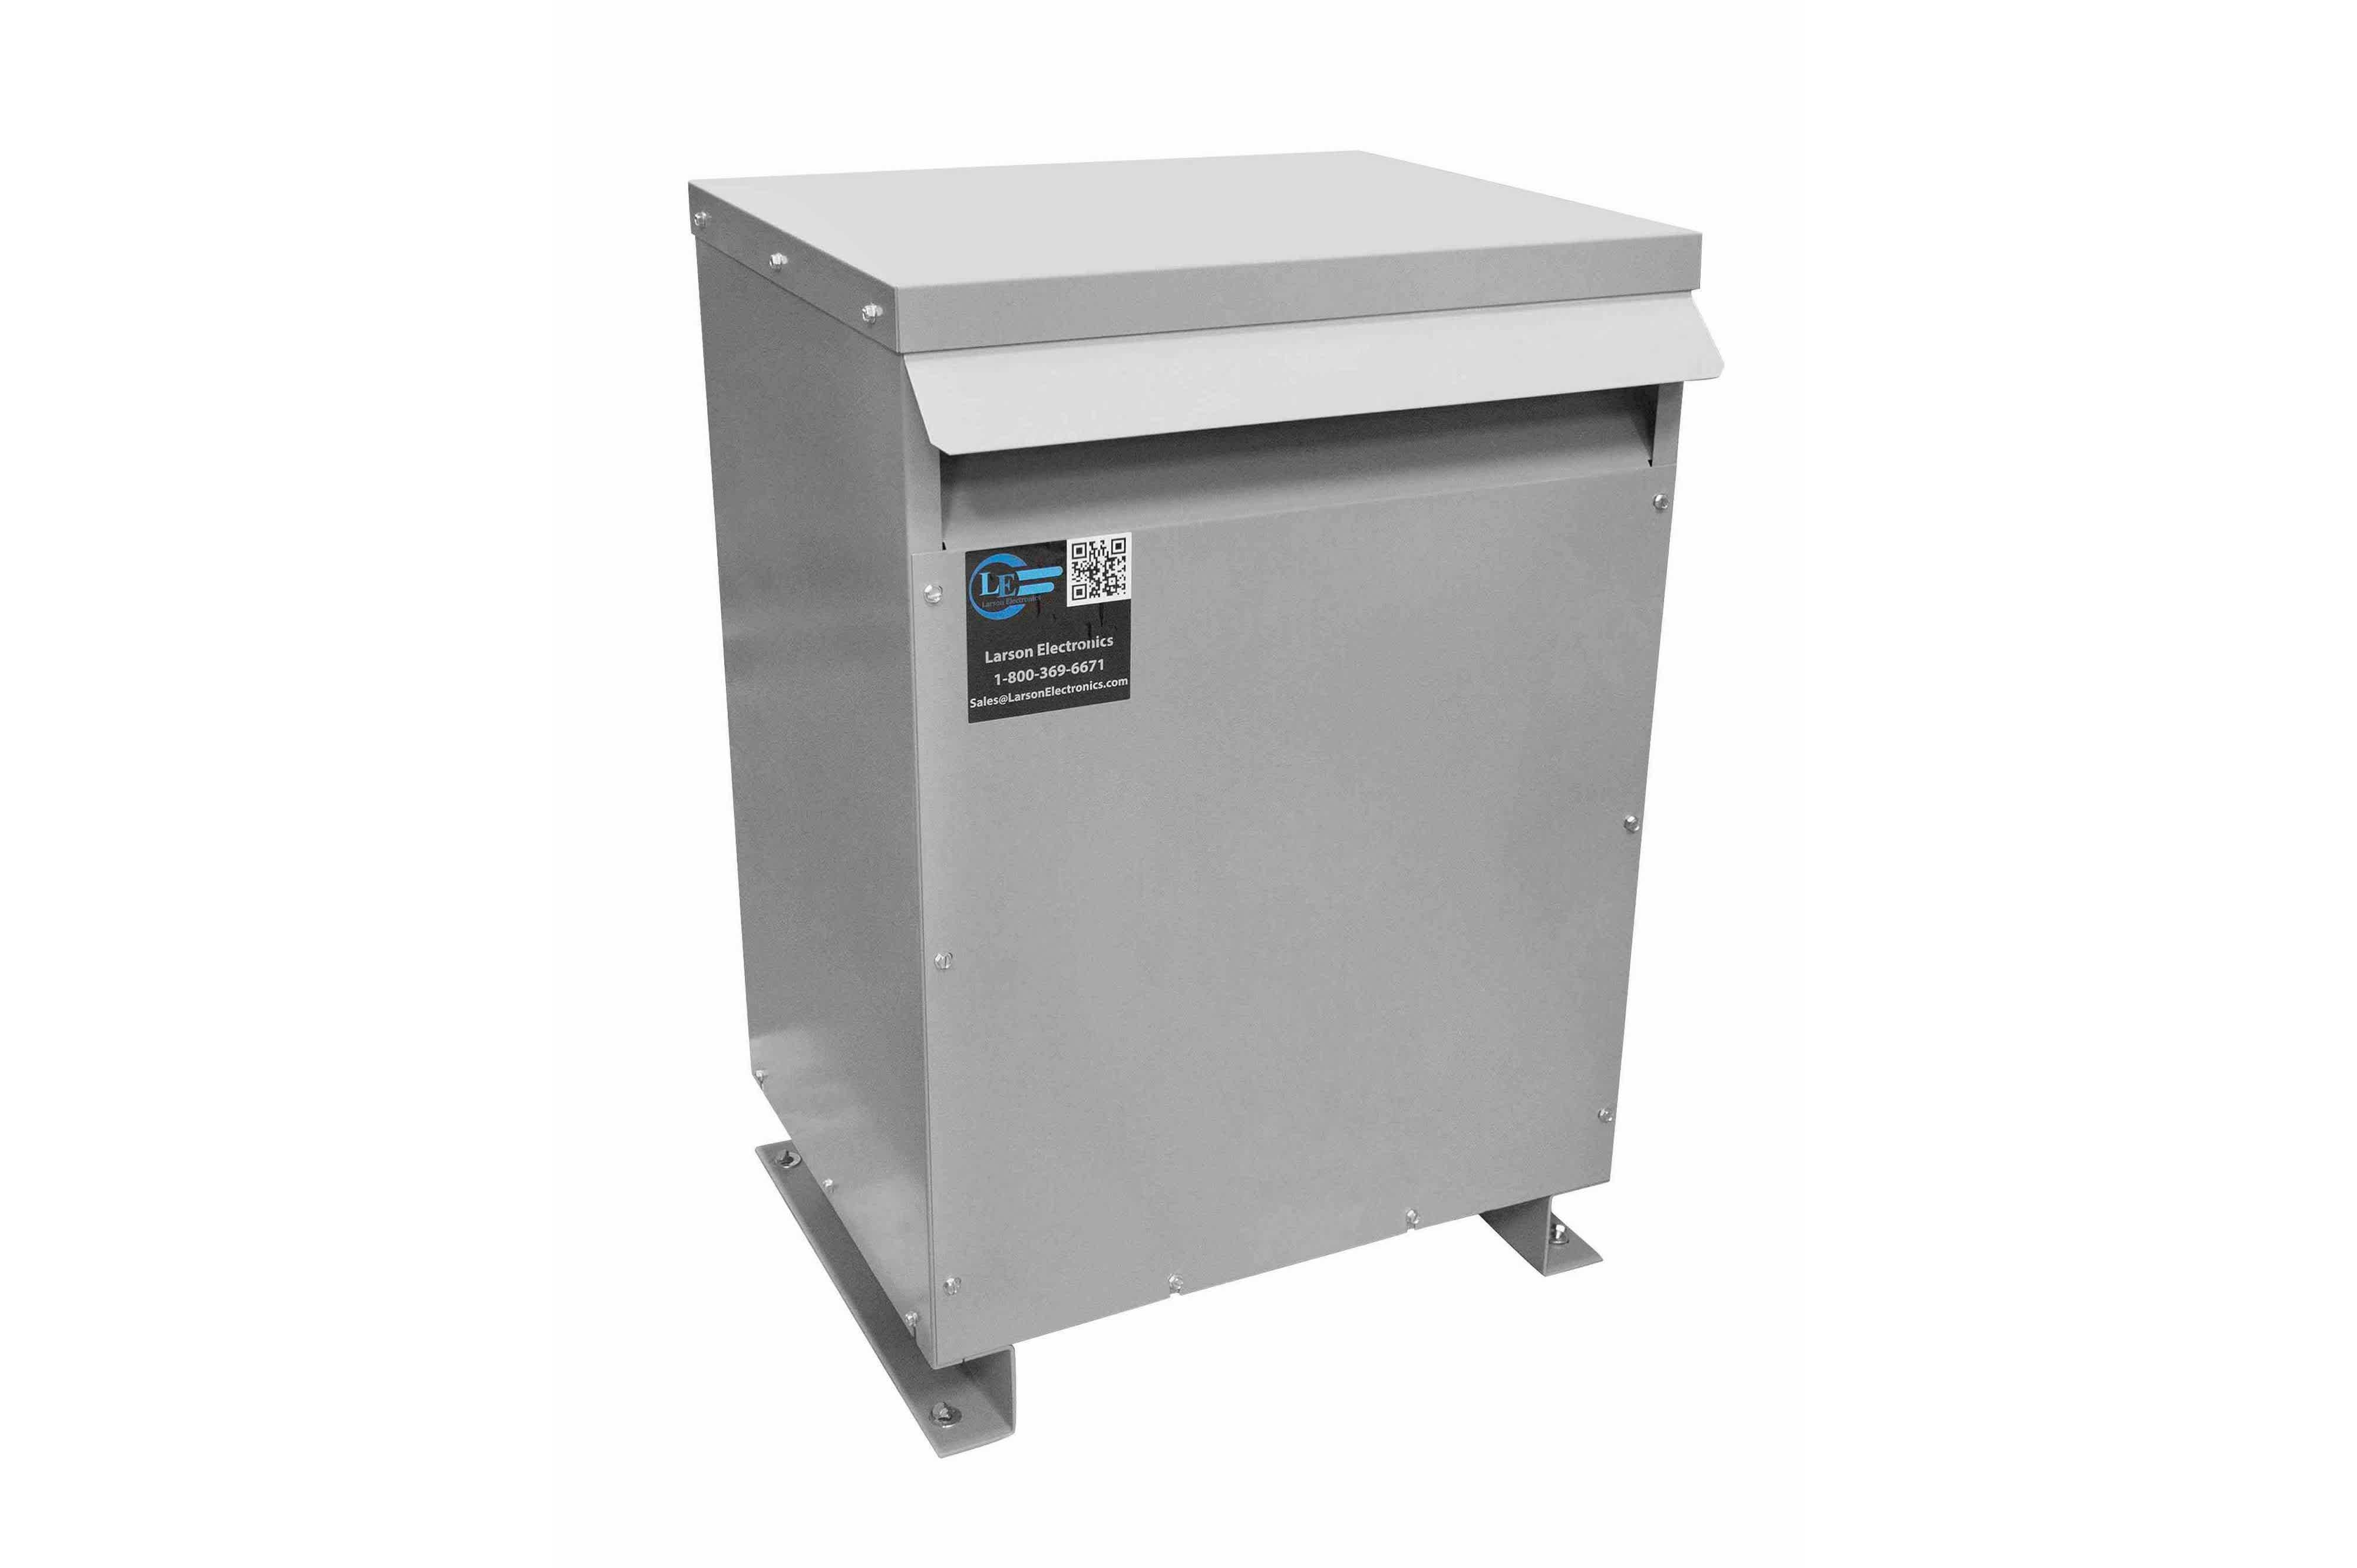 9 kVA 3PH Isolation Transformer, 600V Wye Primary, 415V Delta Secondary, N3R, Ventilated, 60 Hz